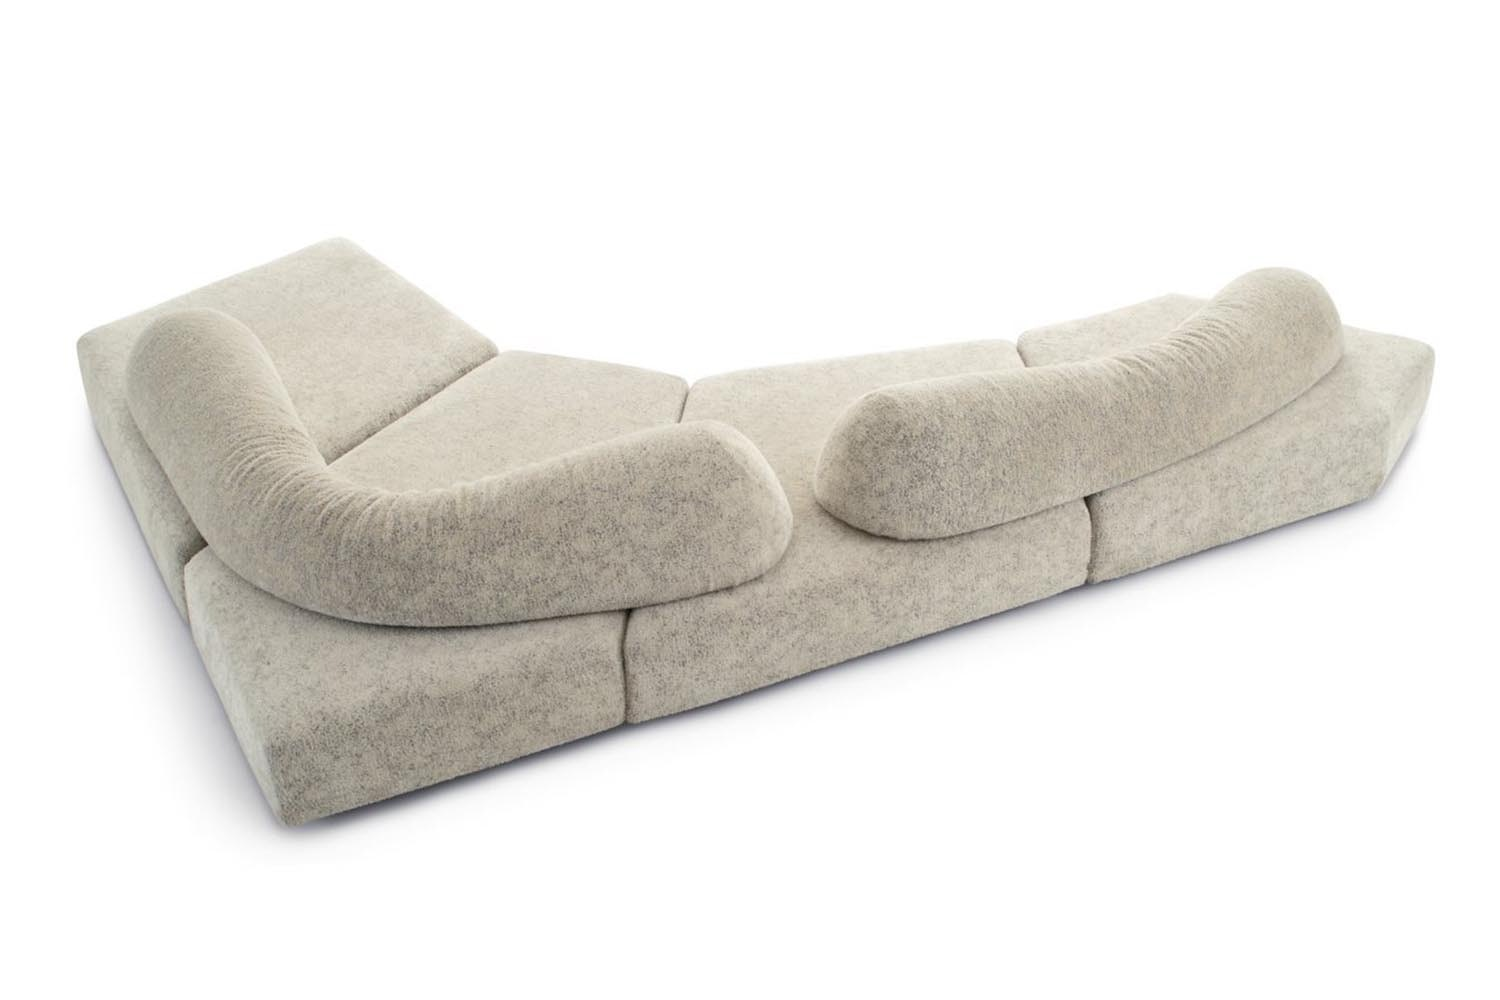 On The Rocks Sofa by Francesco Binfare for Edra